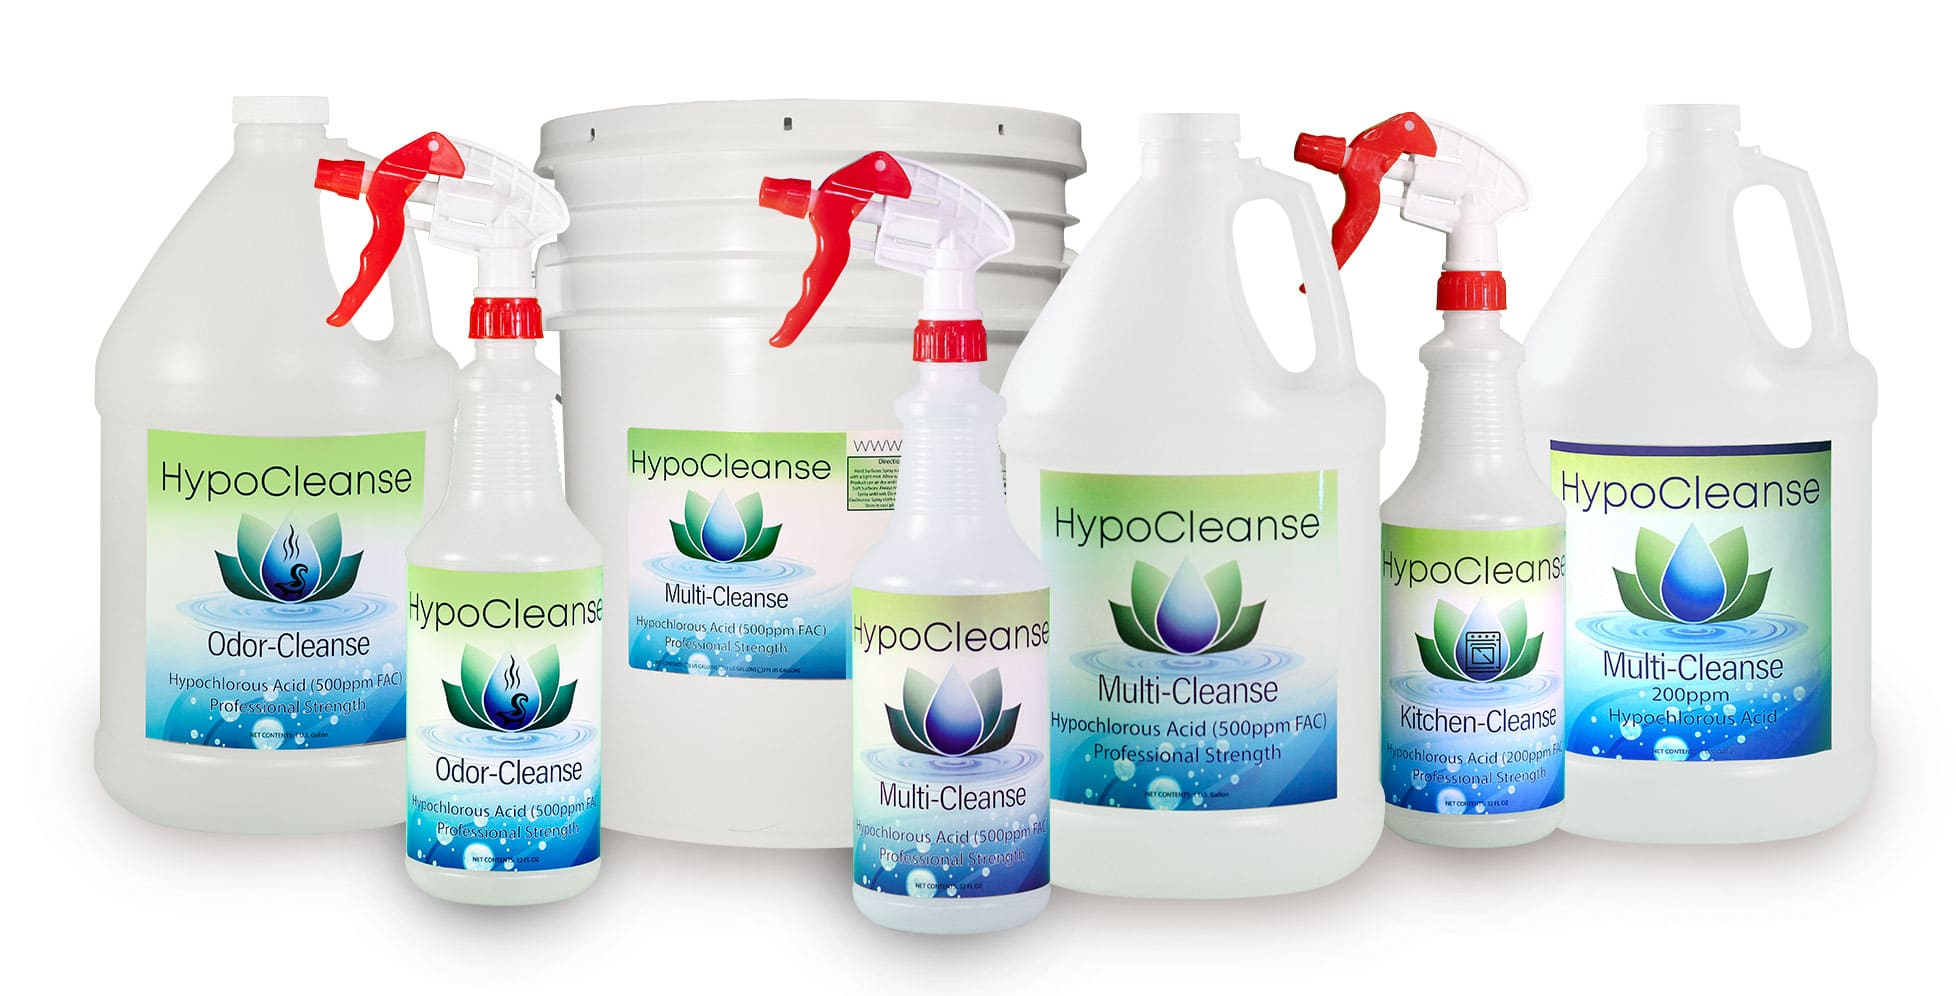 HypoCleanse Products